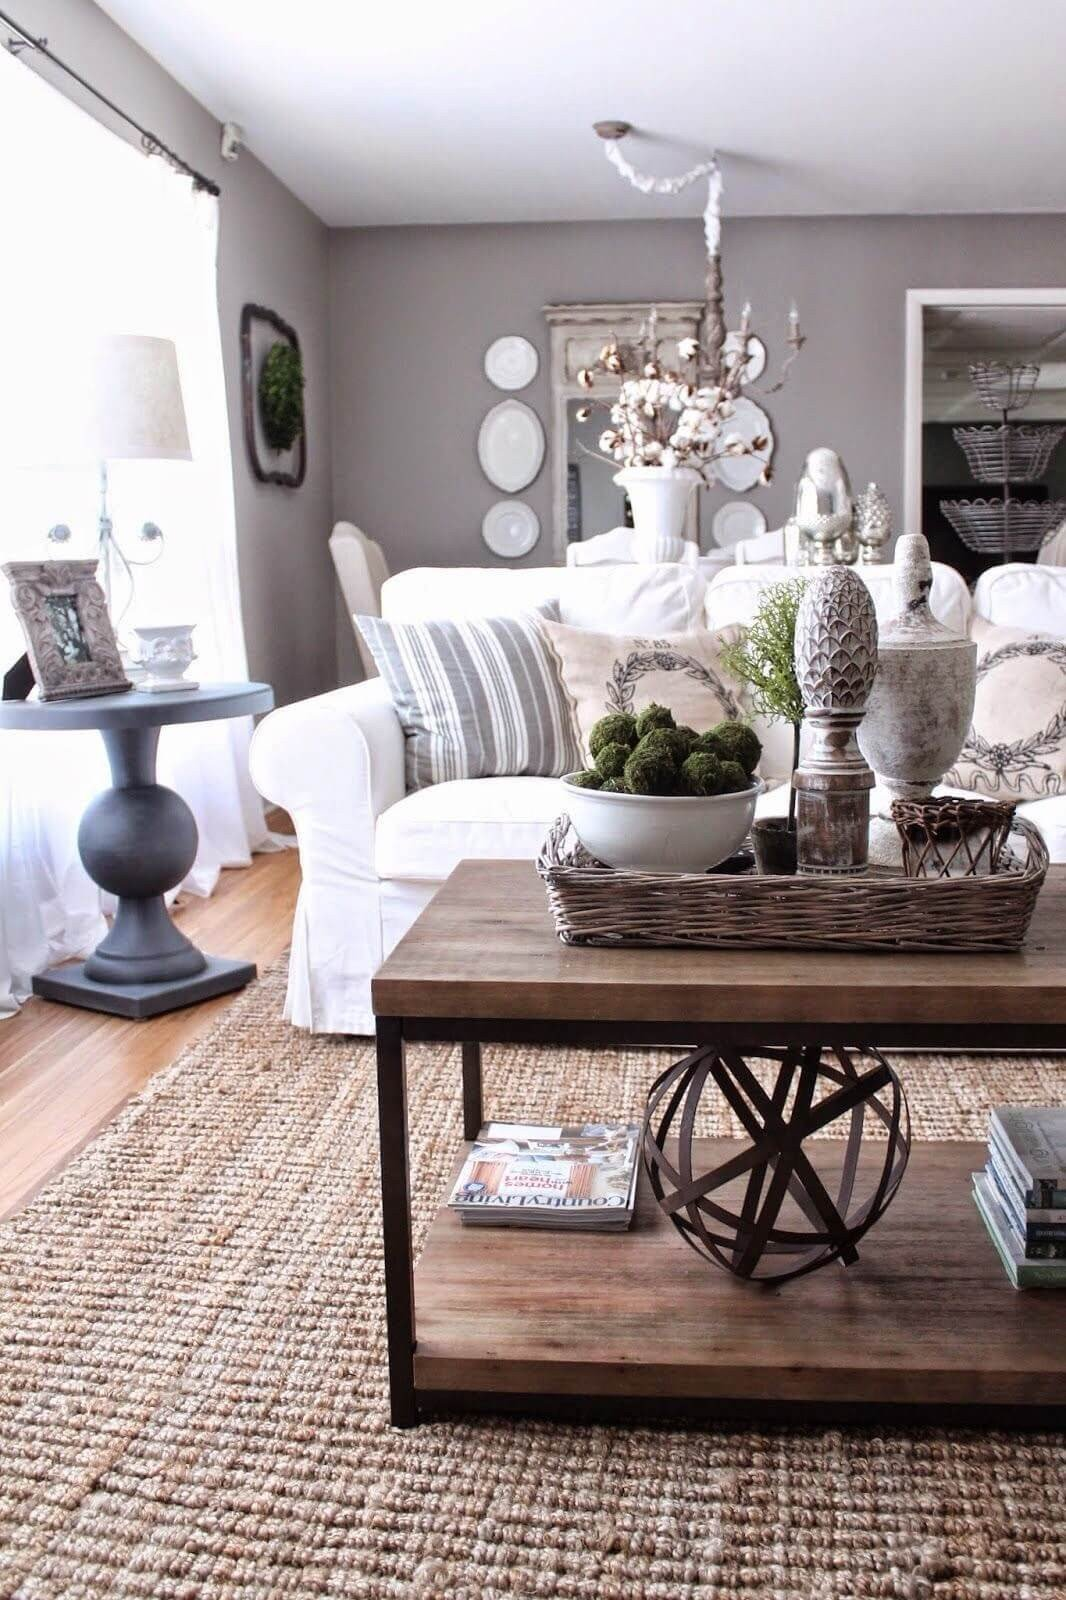 Living Room Table Decor Ideas 37 Best Coffee Table Decorating Ideas and Designs for 2019